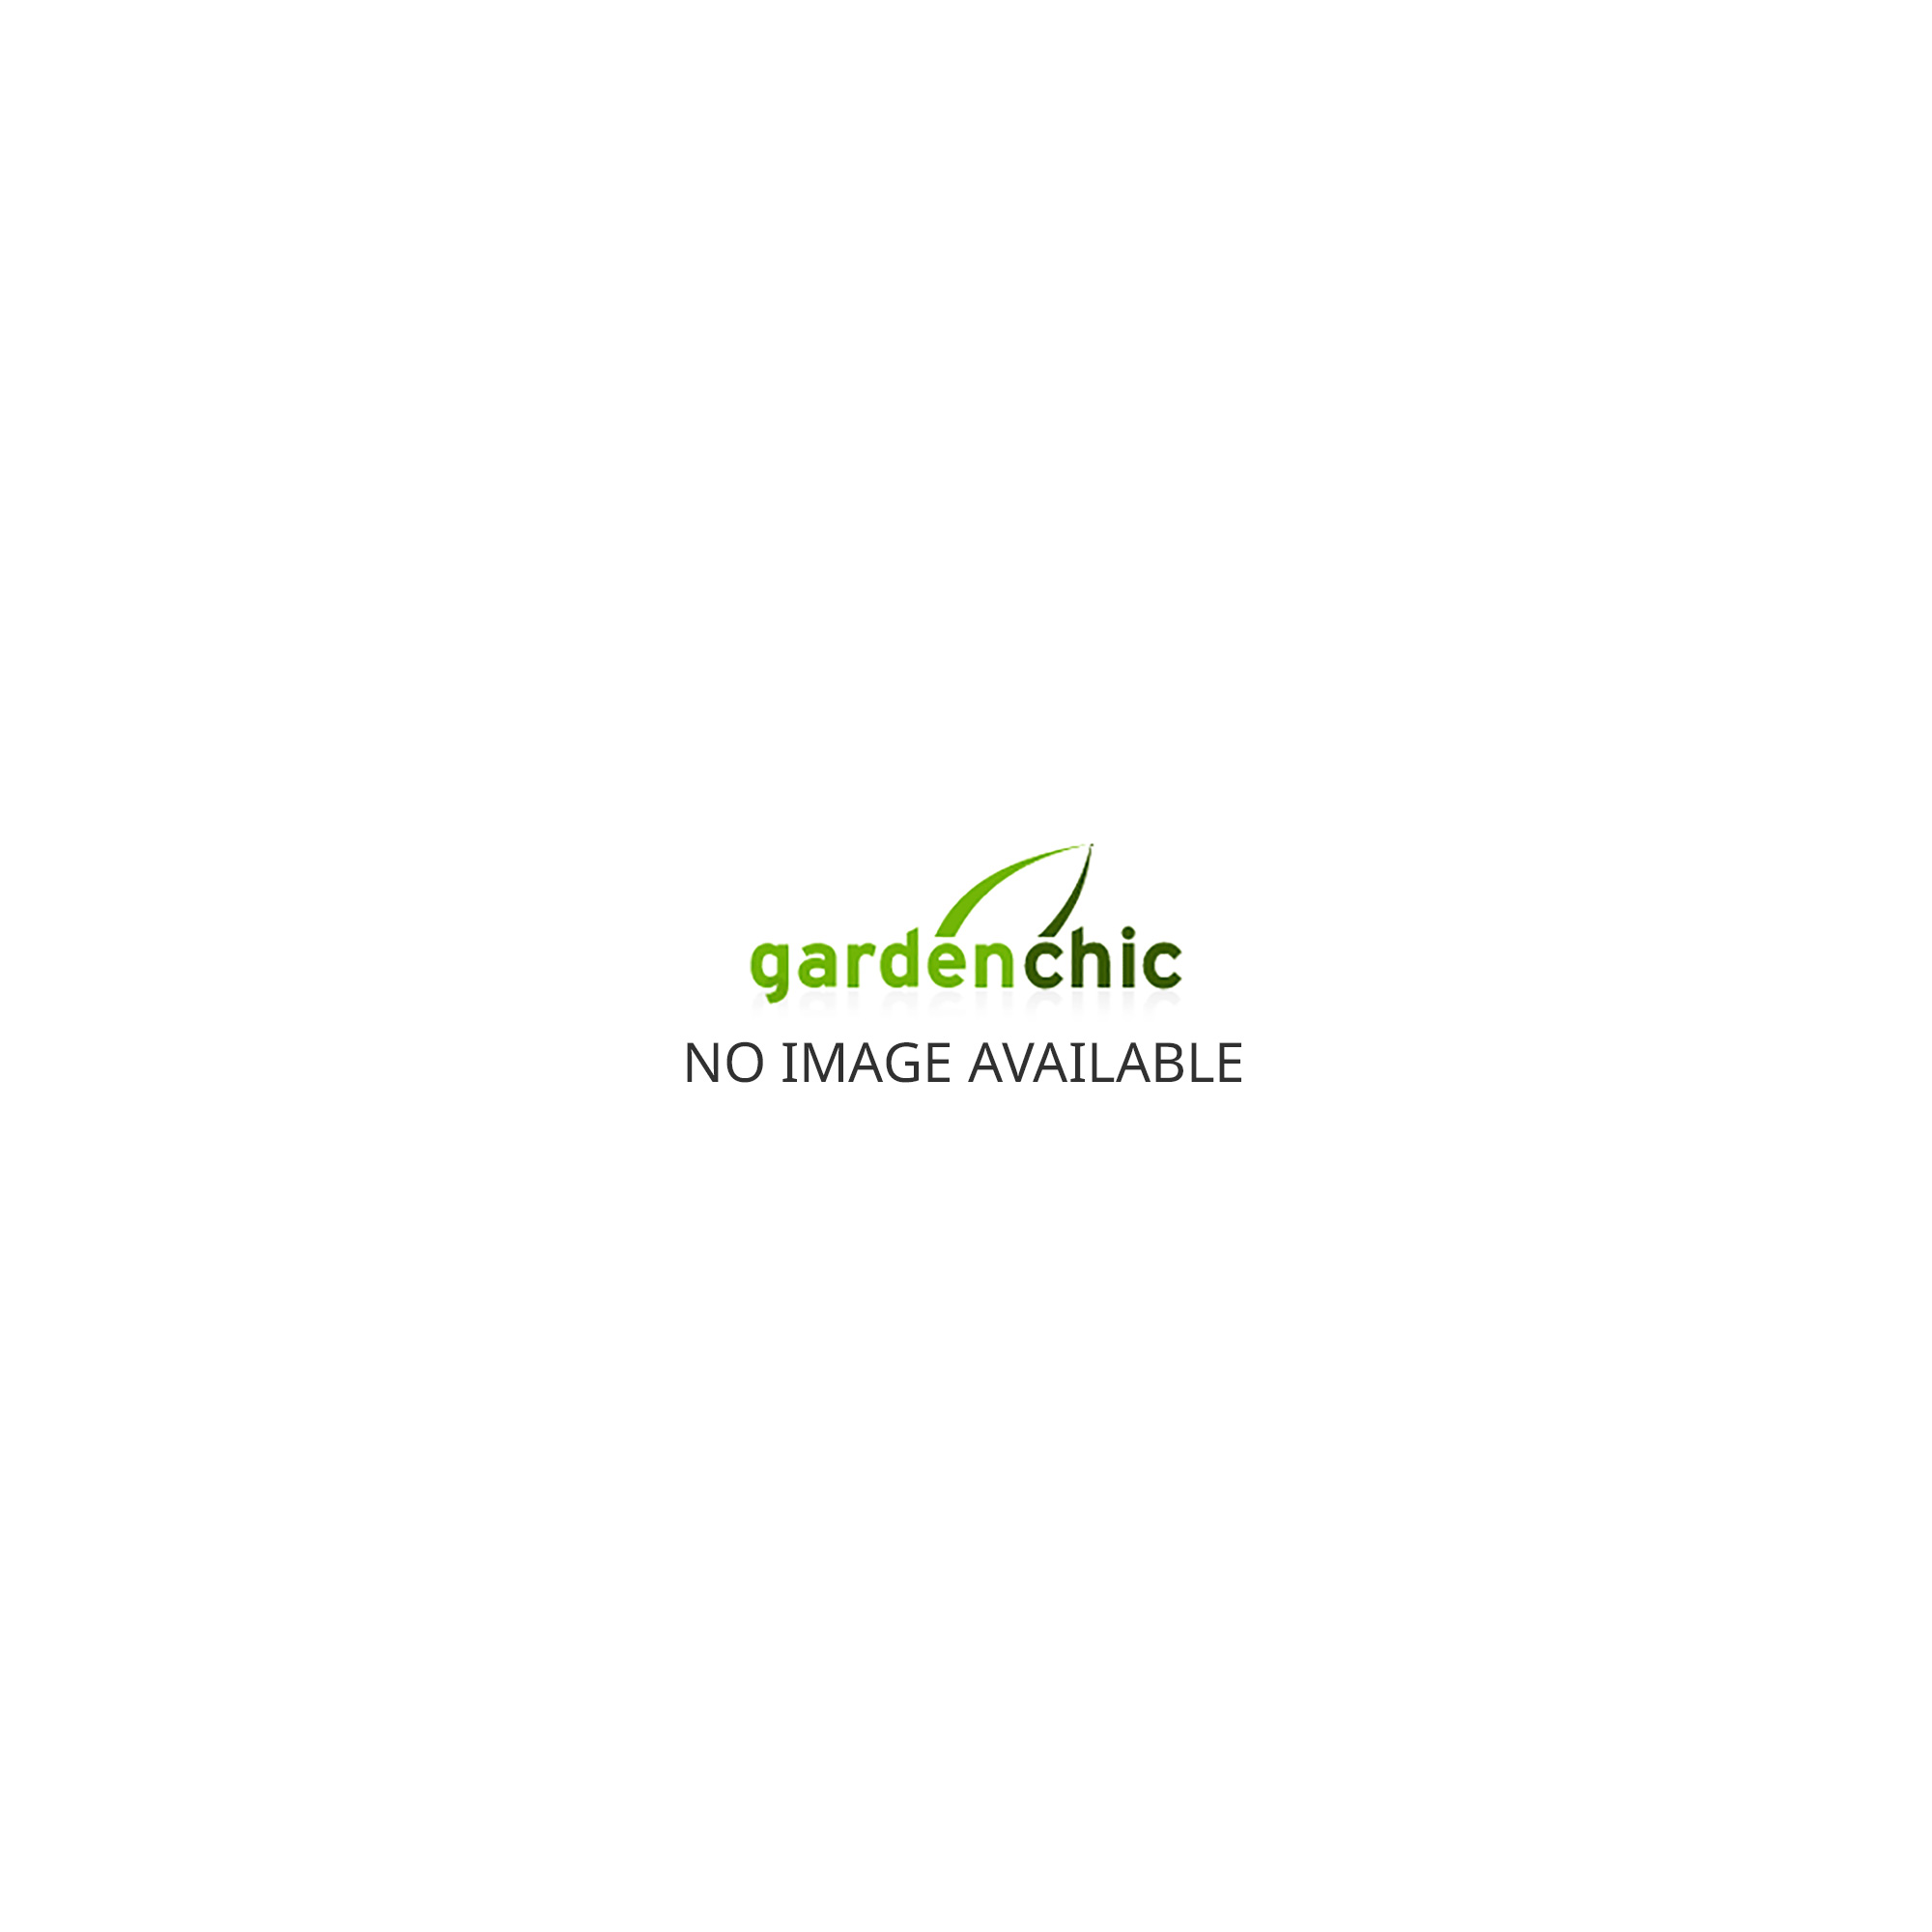 Venus 5000 8ft x 6ft Greenhouse - Green FREE Matching Base until APRIL 2018